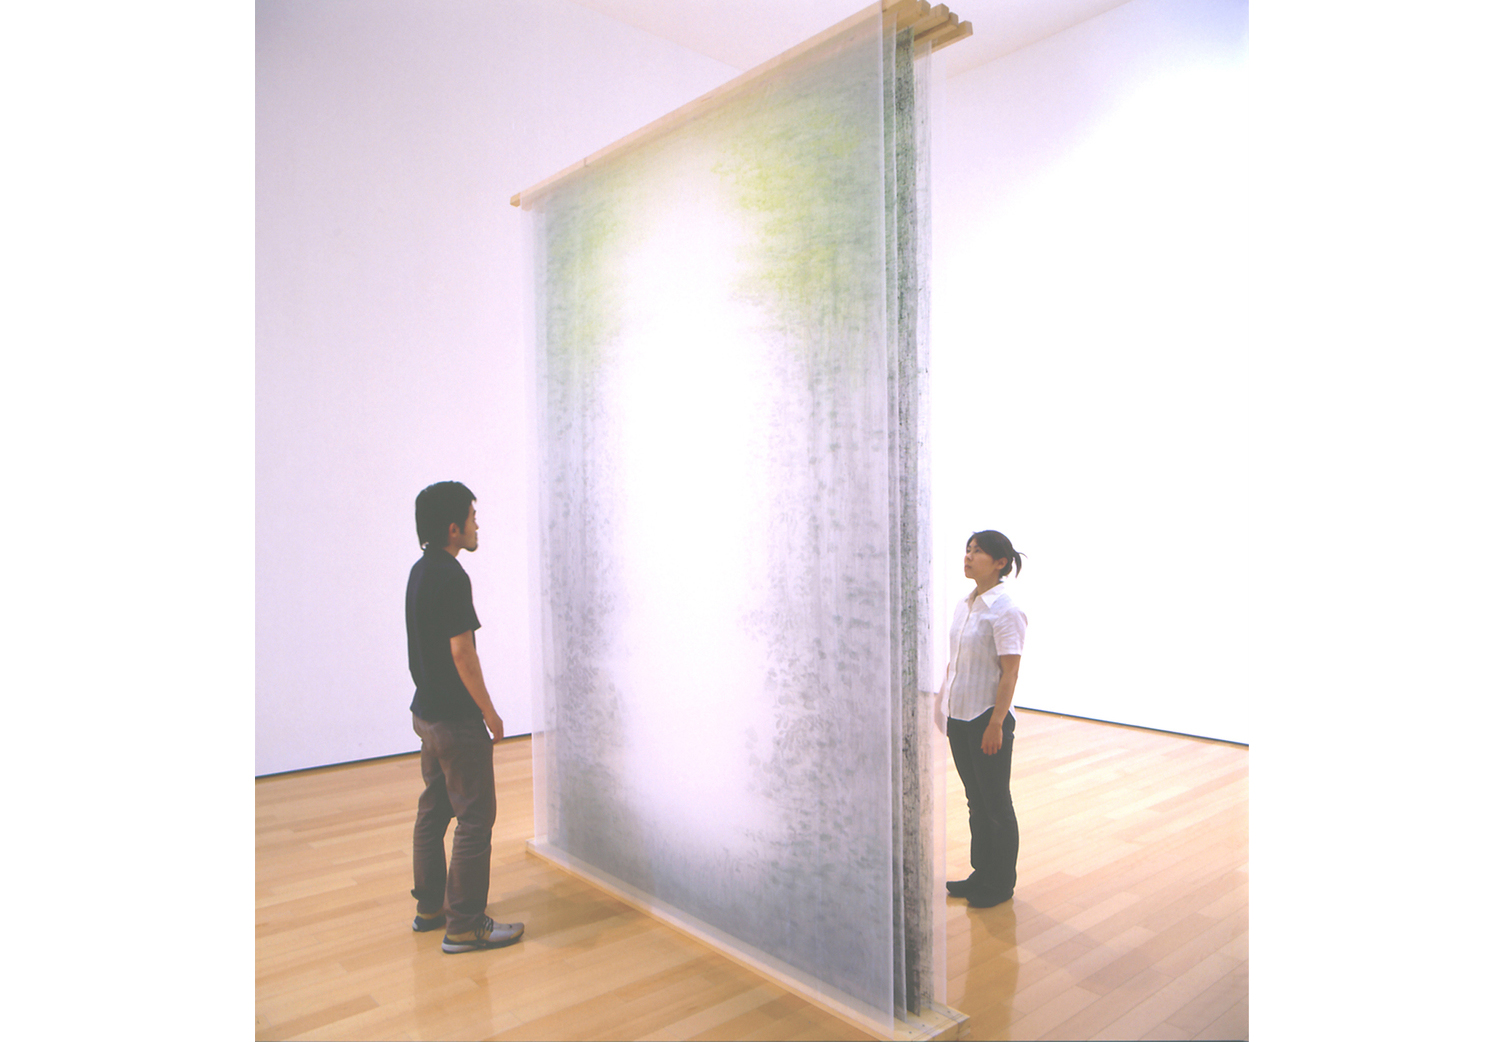 The Other Side, 2005